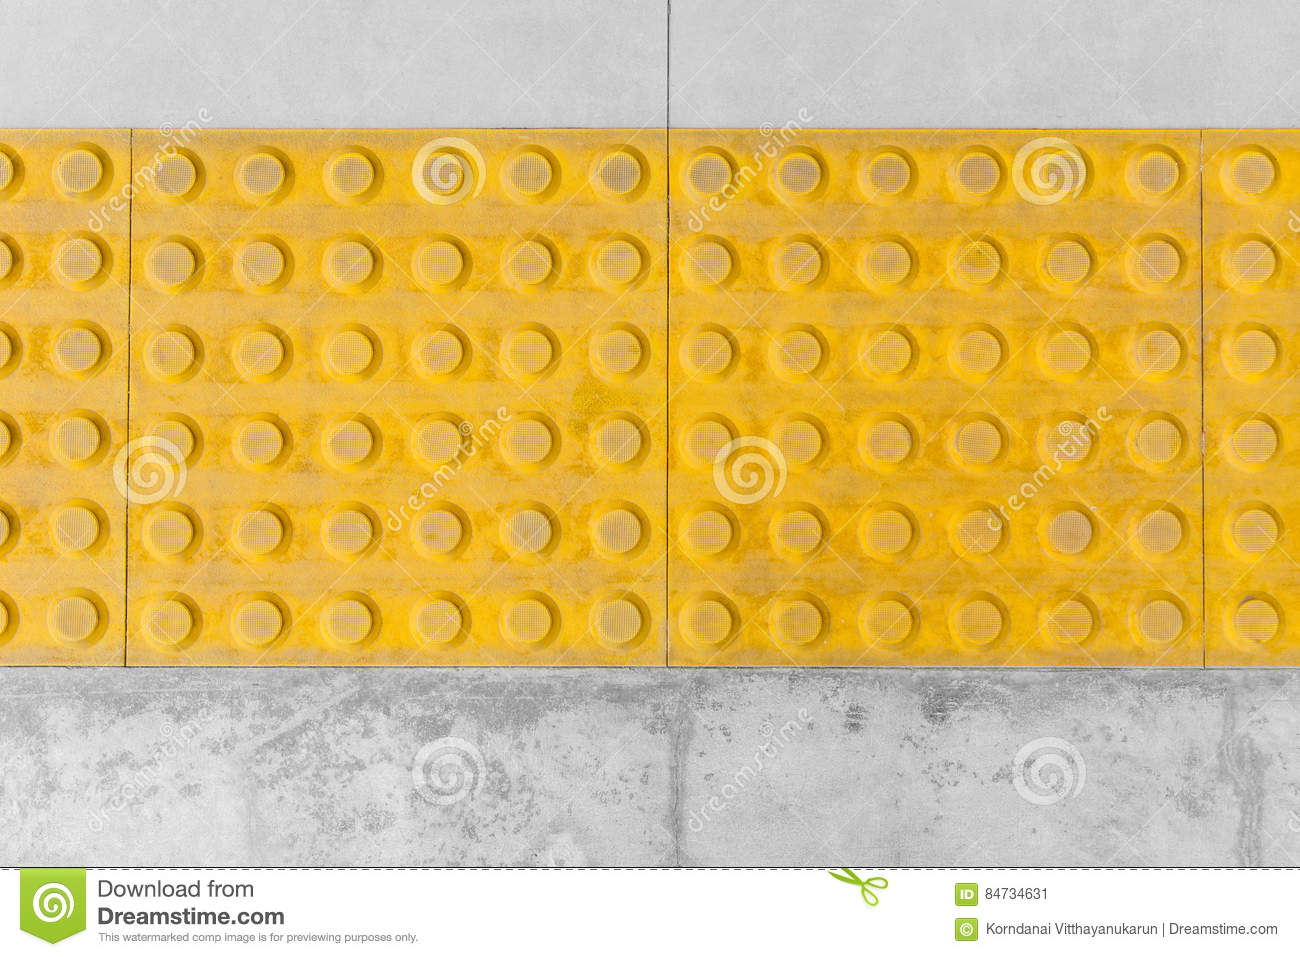 Tactile paving or tile footpath for blind stock image image royalty free stock photo dailygadgetfo Image collections